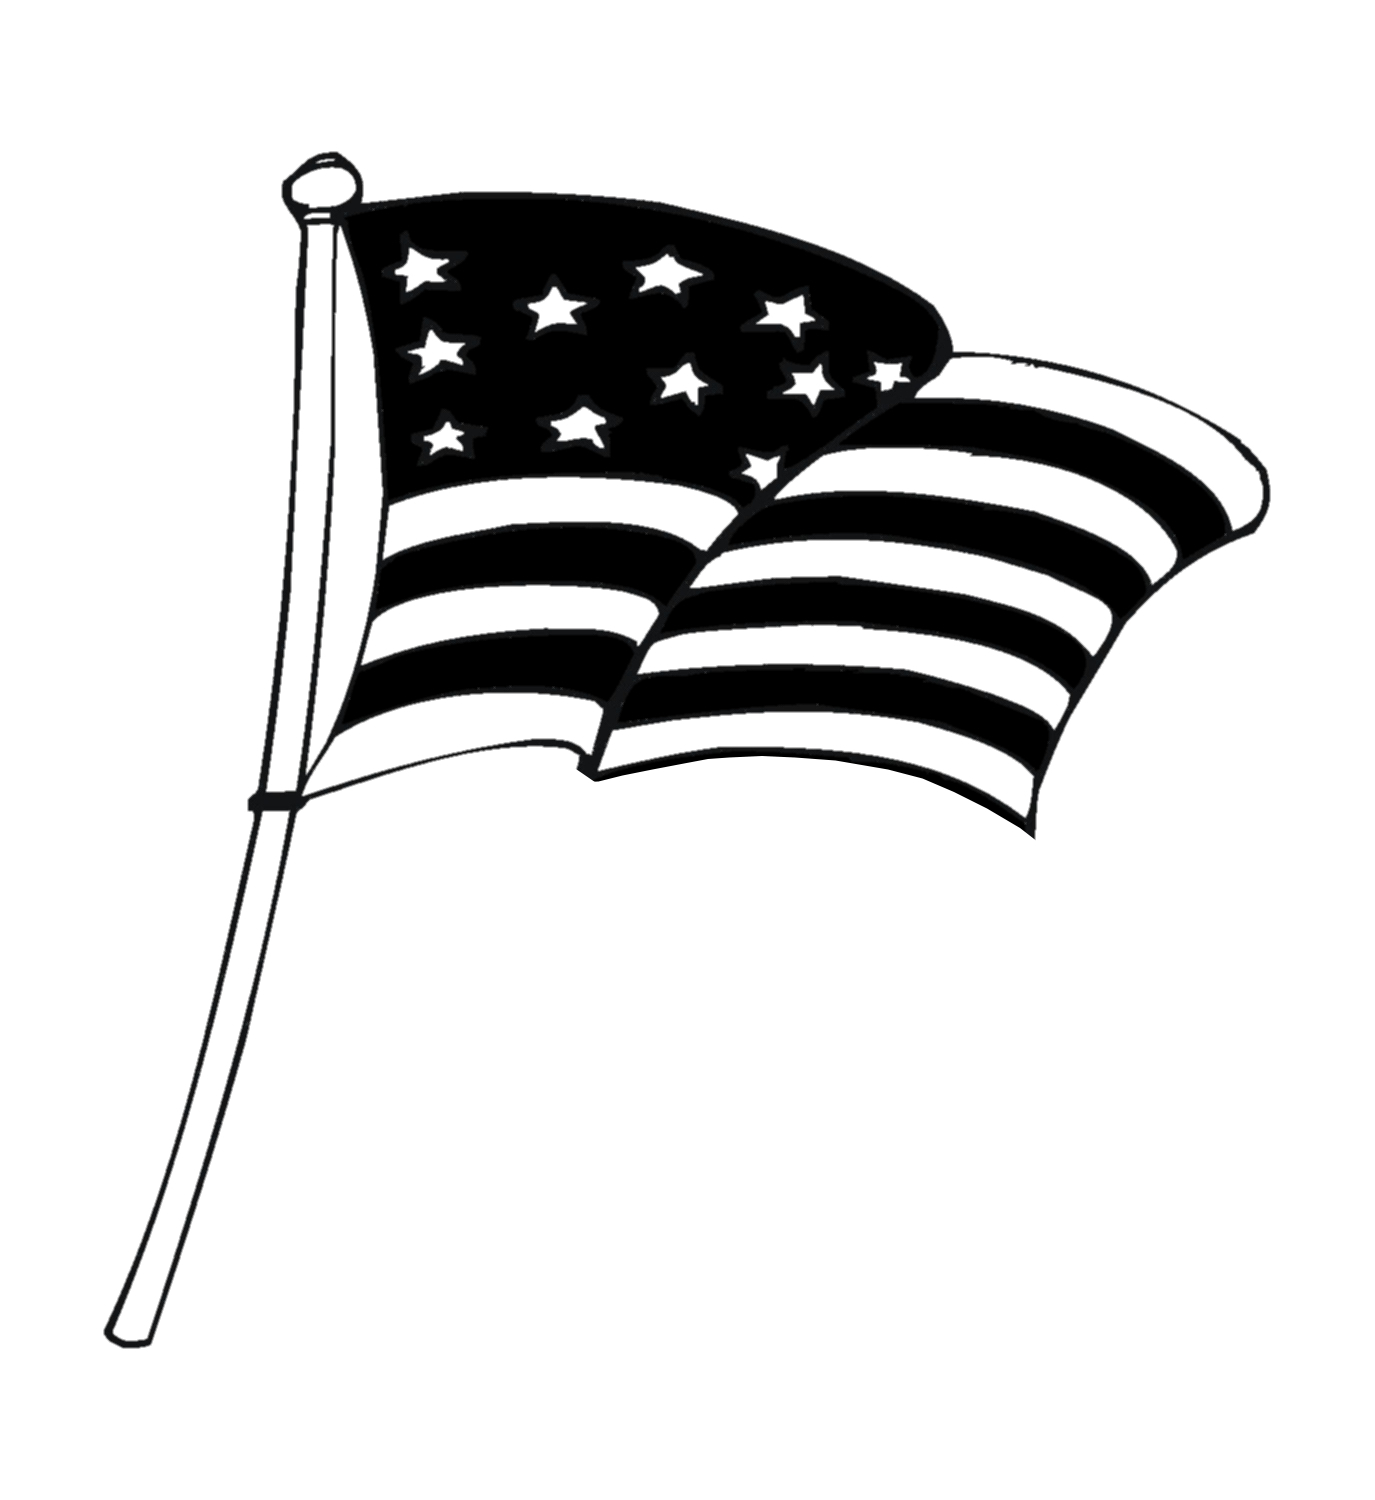 Free American Flag Clip Art Black And White Download Free Clip Art Free Clip Art On Clipart